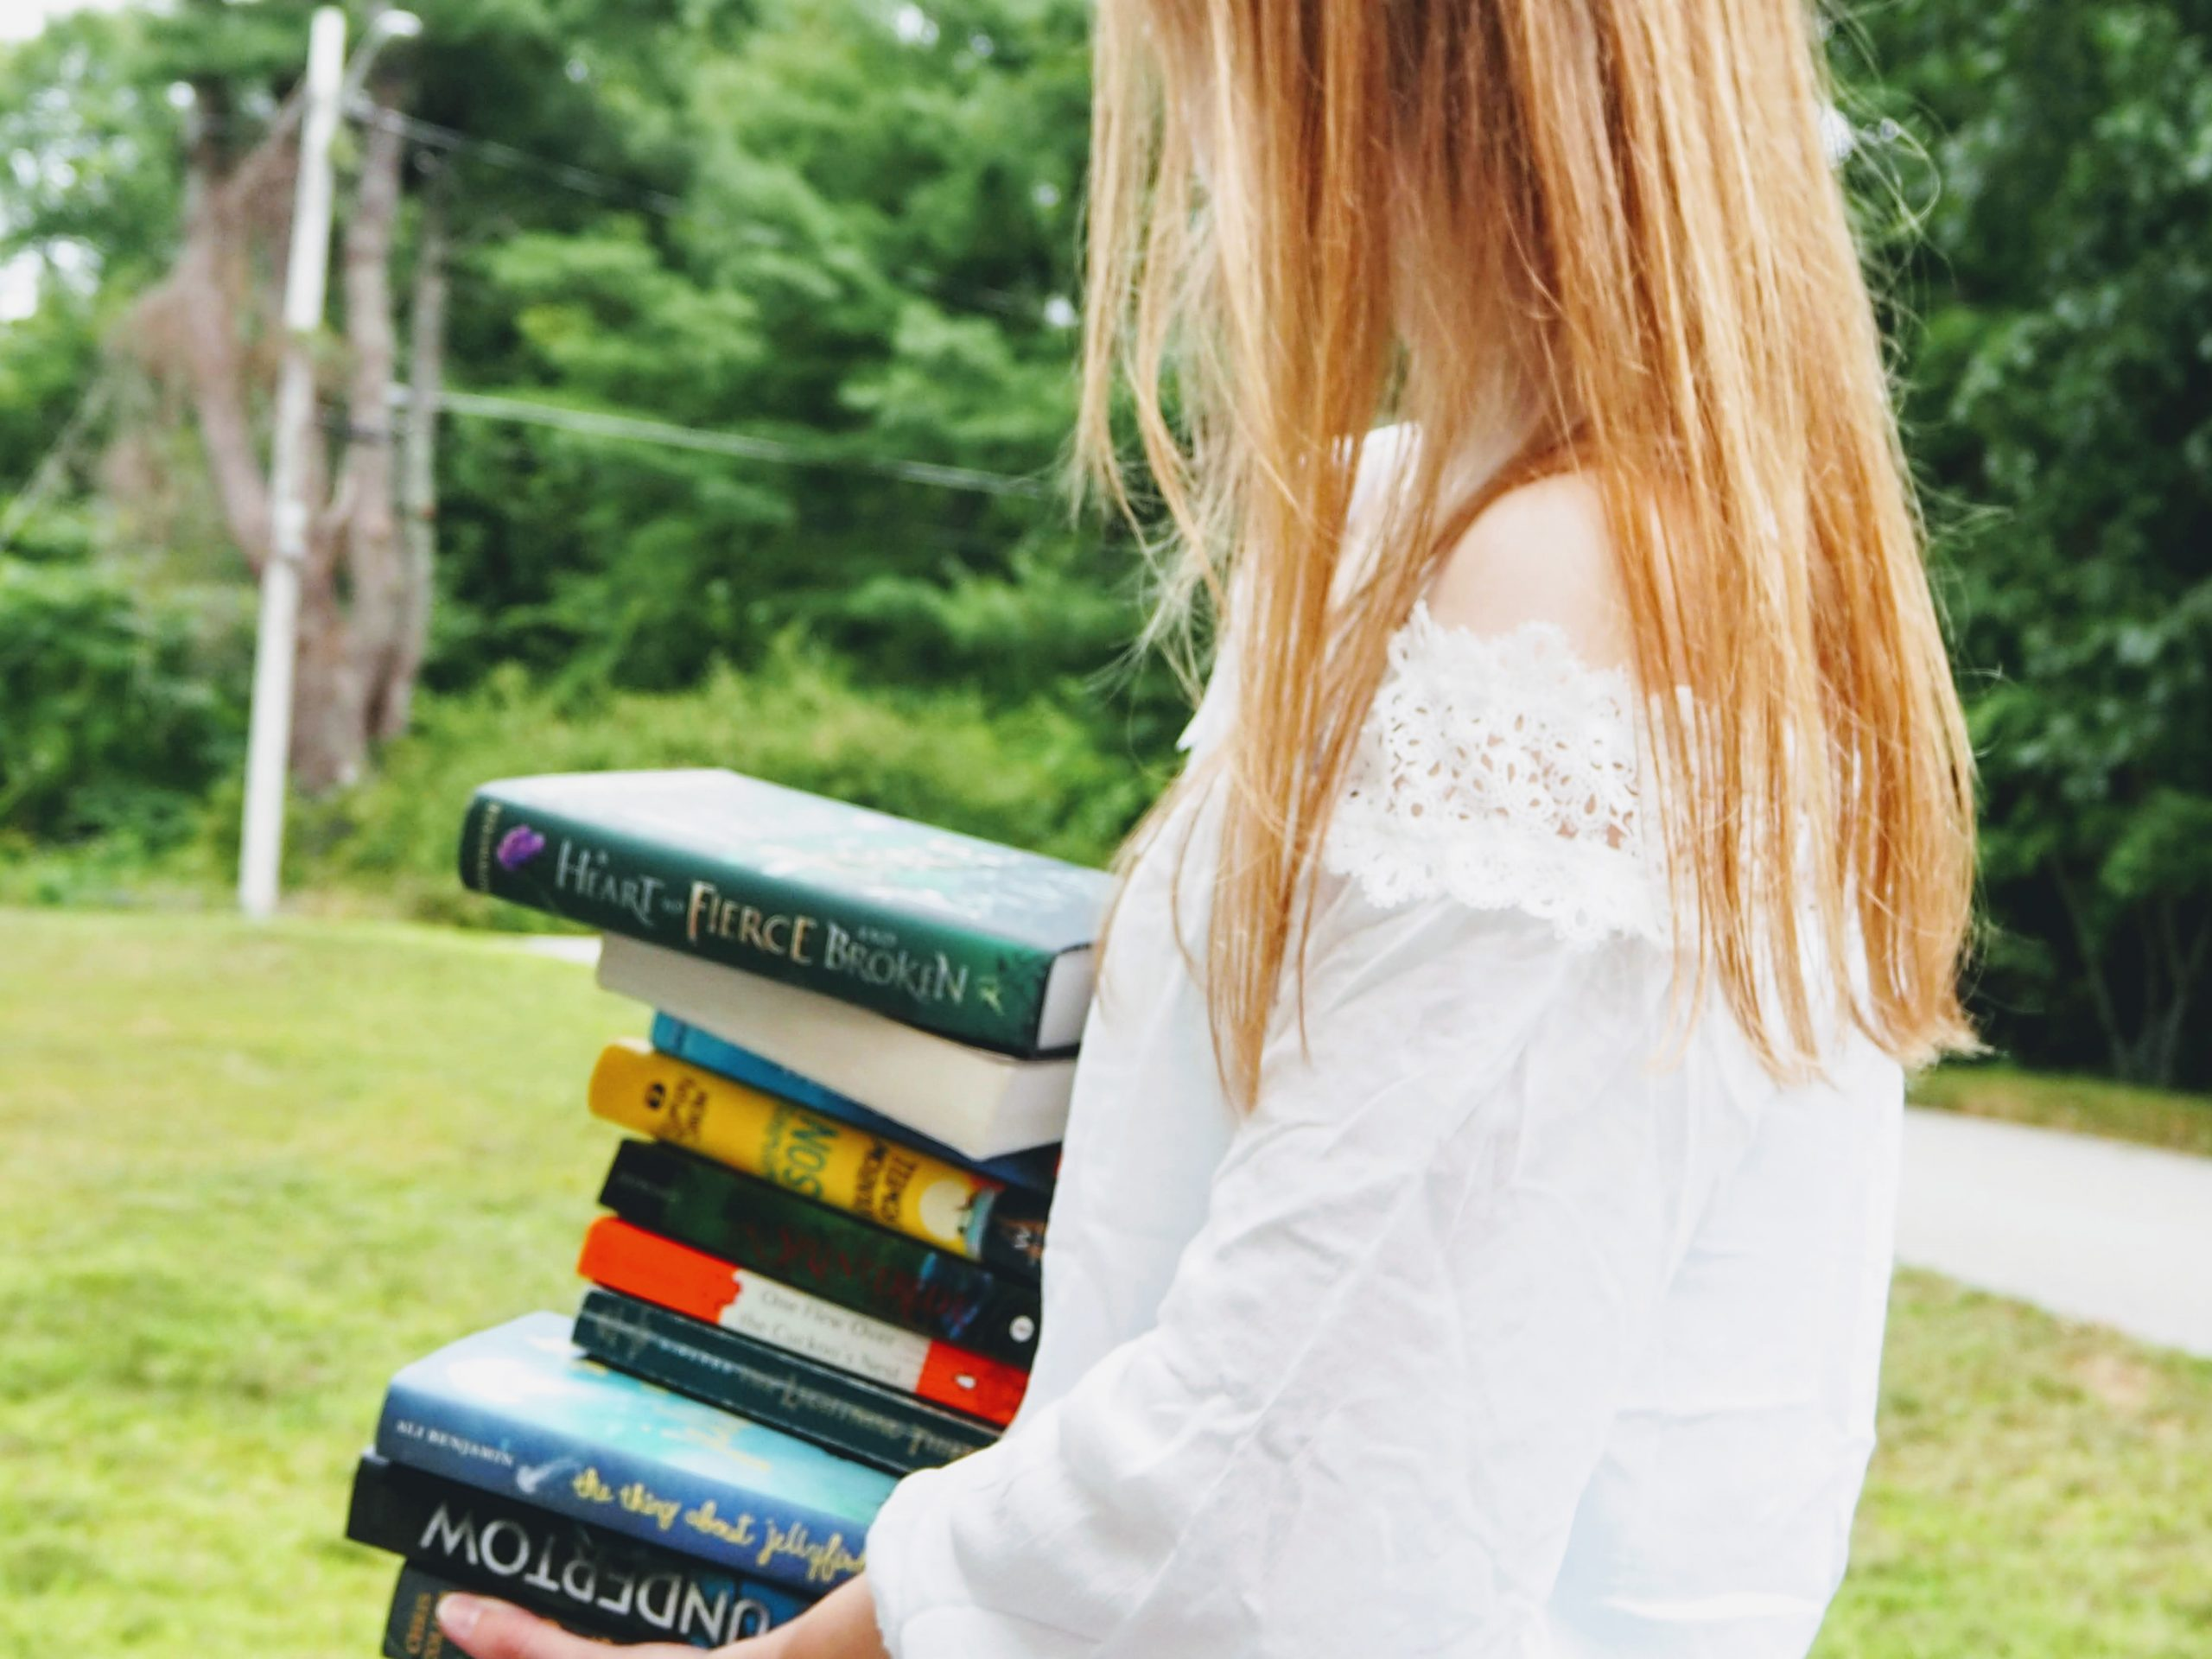 Holding a pile of books